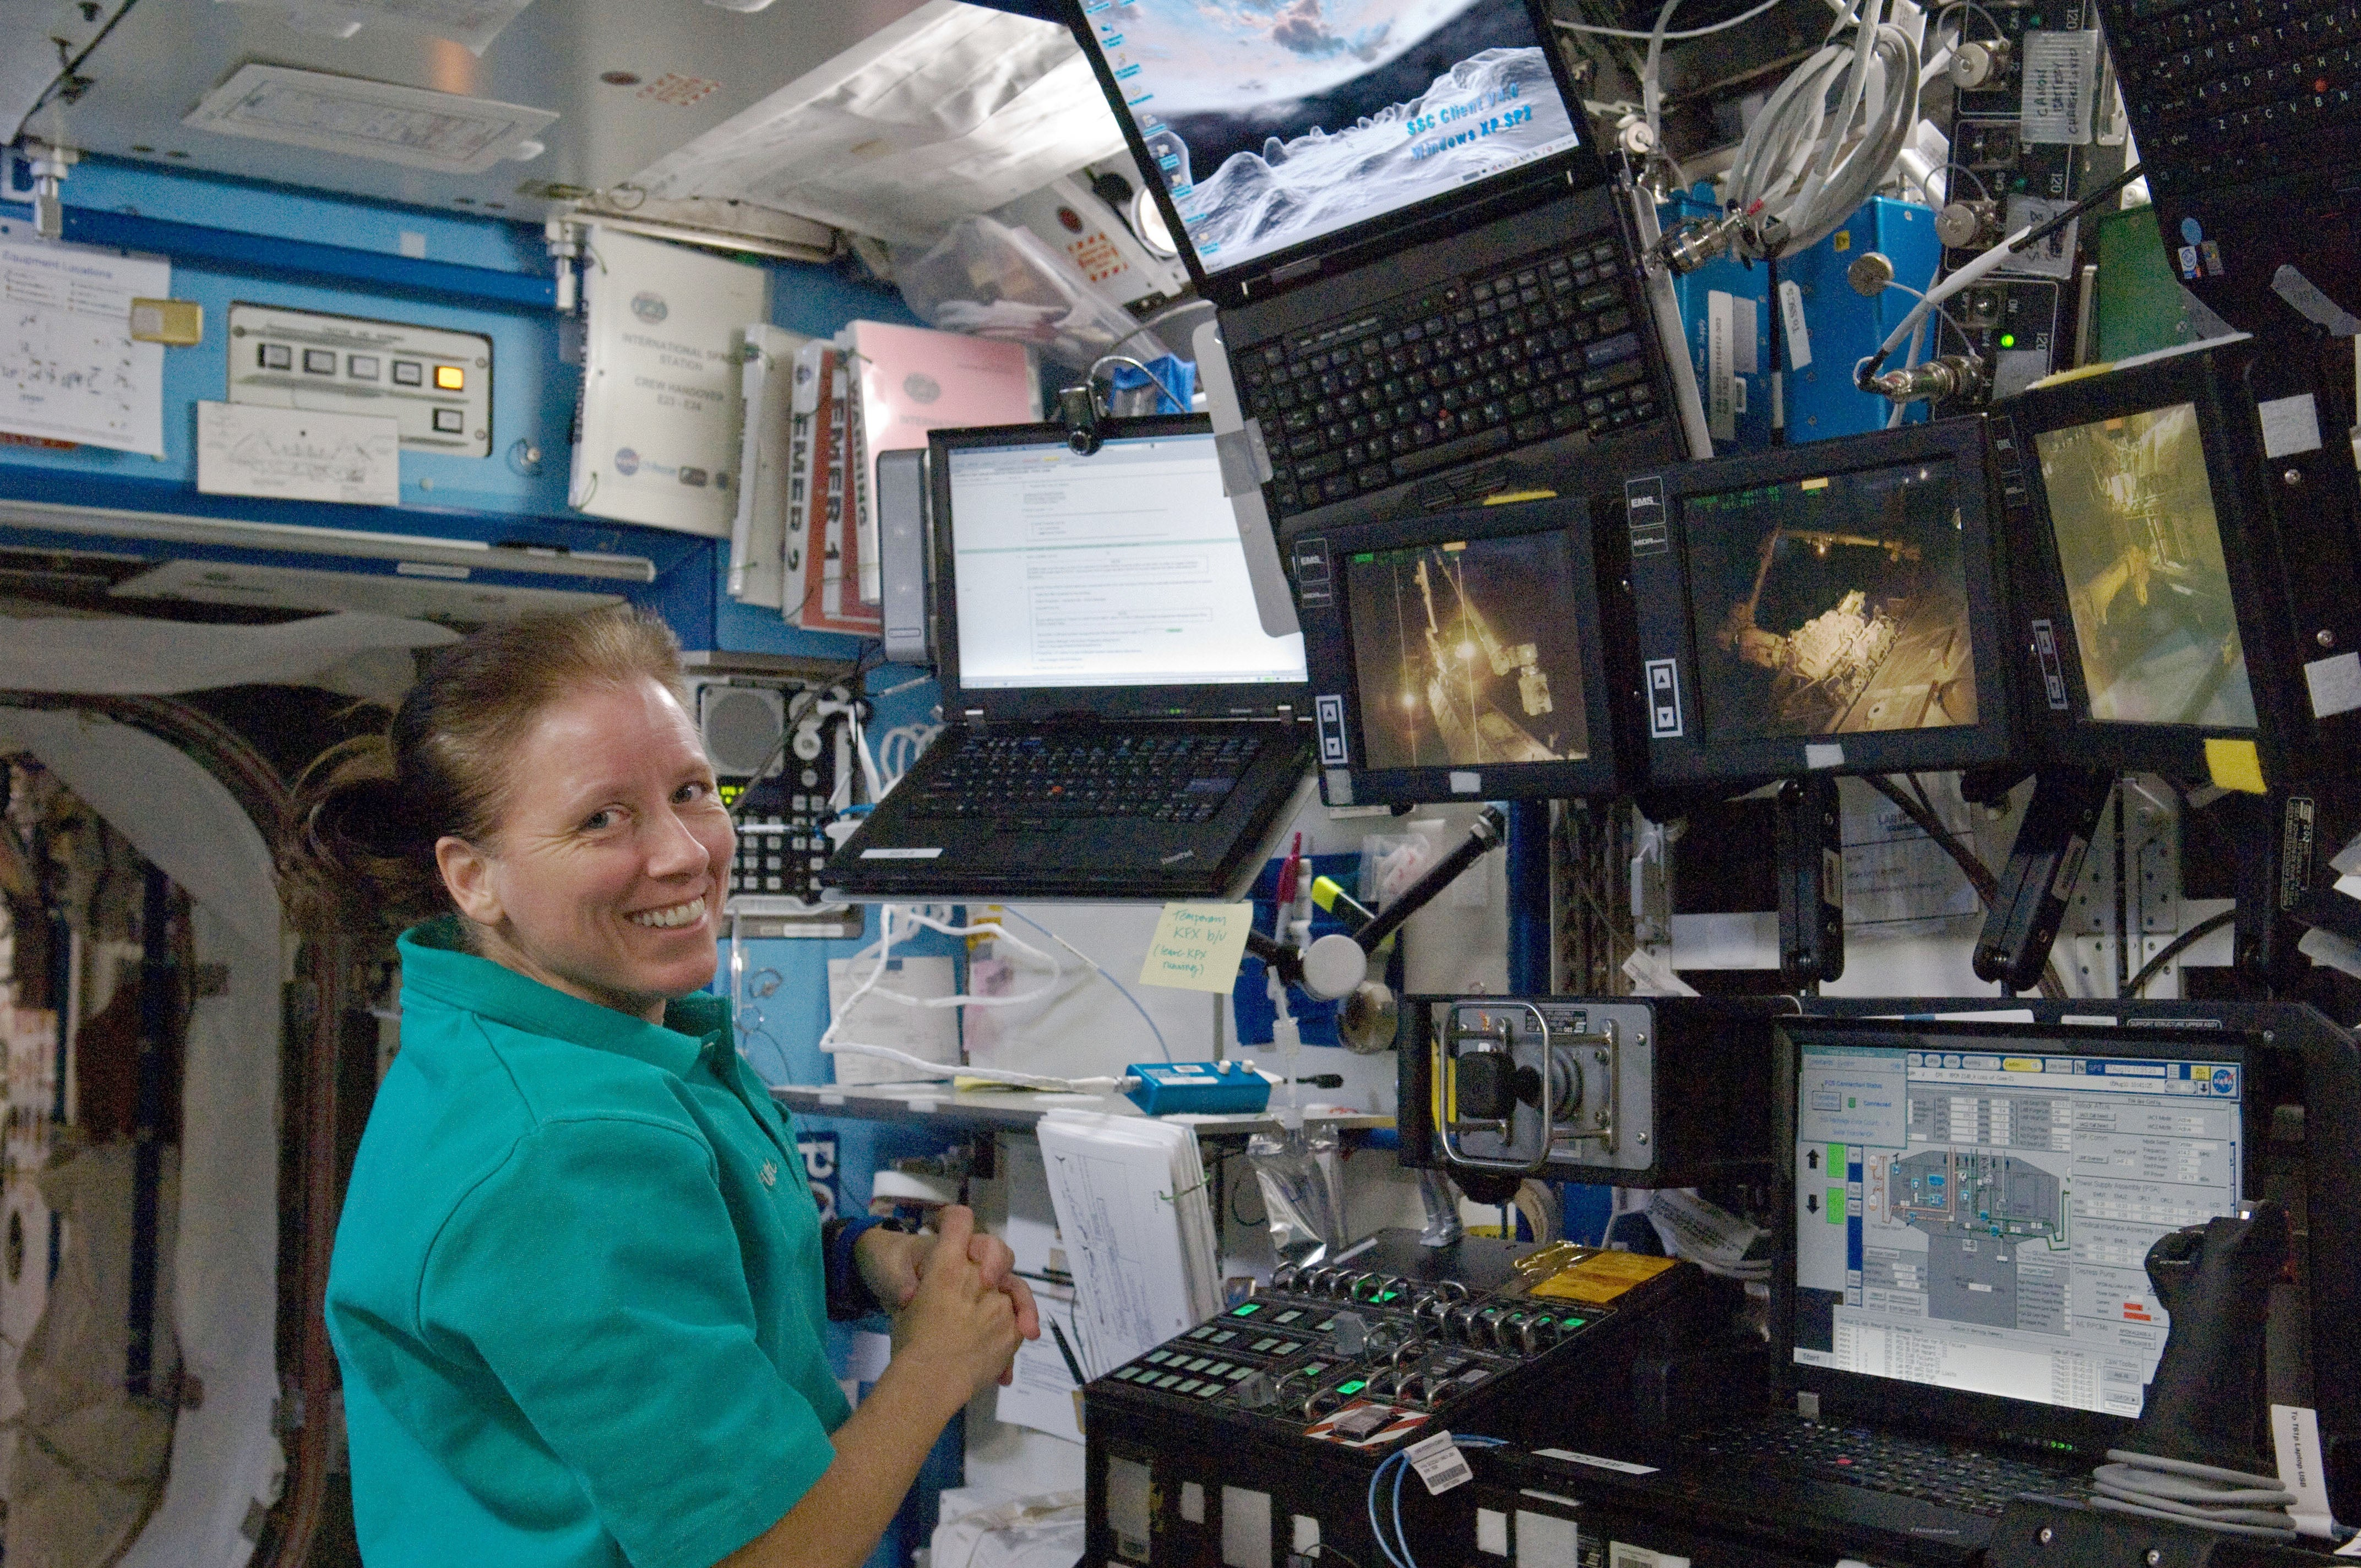 How Astronauts Use Laptops on the International Space Station